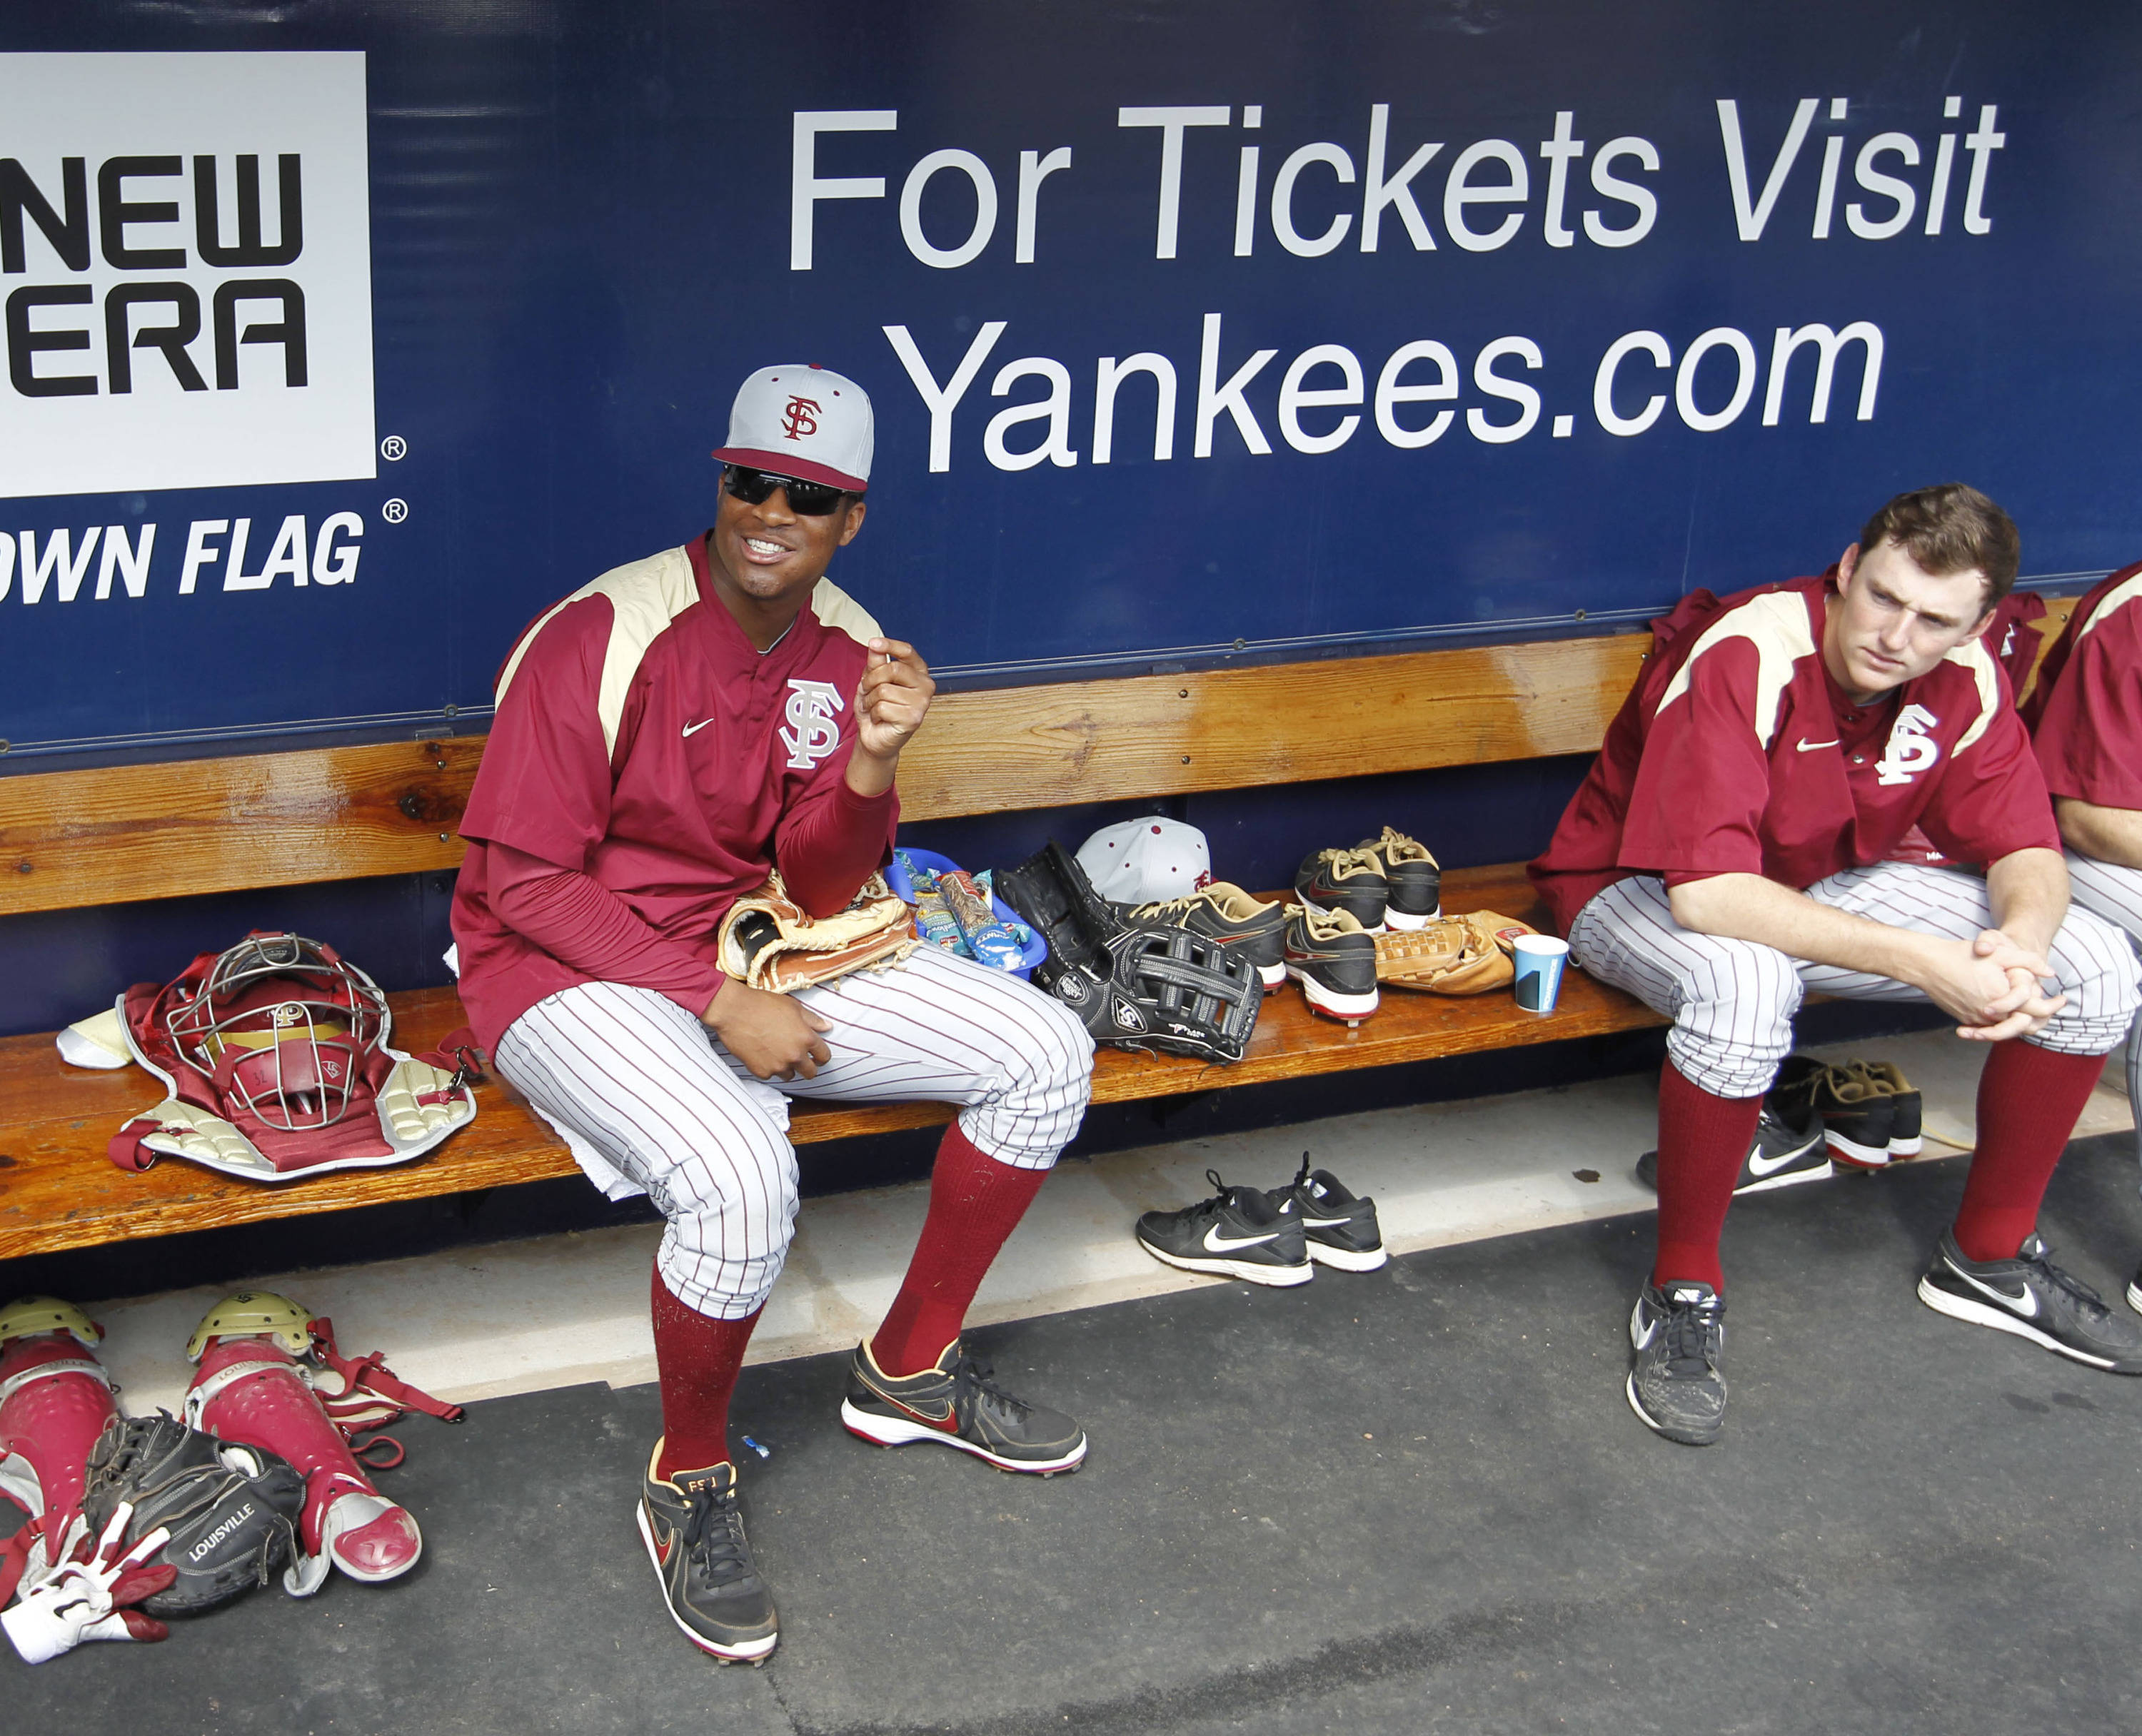 Feb 25, 2014; Tampa, FL, USA; Florida State Seminoles pitcher/outfielder Jameis Winston (44) prior to the game against the New York Yankees at George M. Steinbrenner Field. Mandatory Credit: Kim Klement-USA TODAY Sports